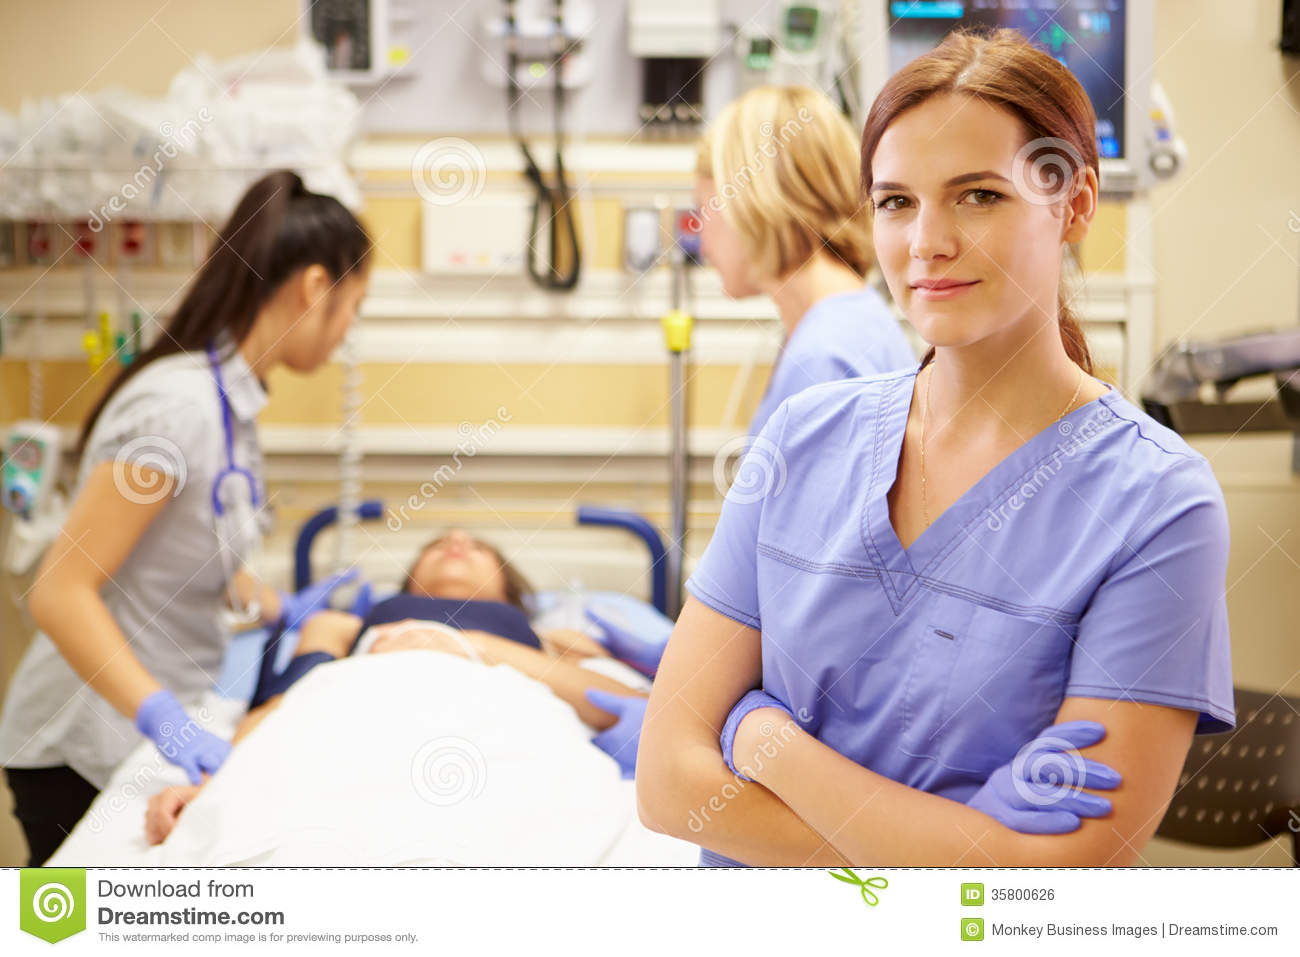 image of nursing Bedside nursing care has become increasingly complicated and stressful  changes in technology, patient acuity, patient populations, and workflow patterns .